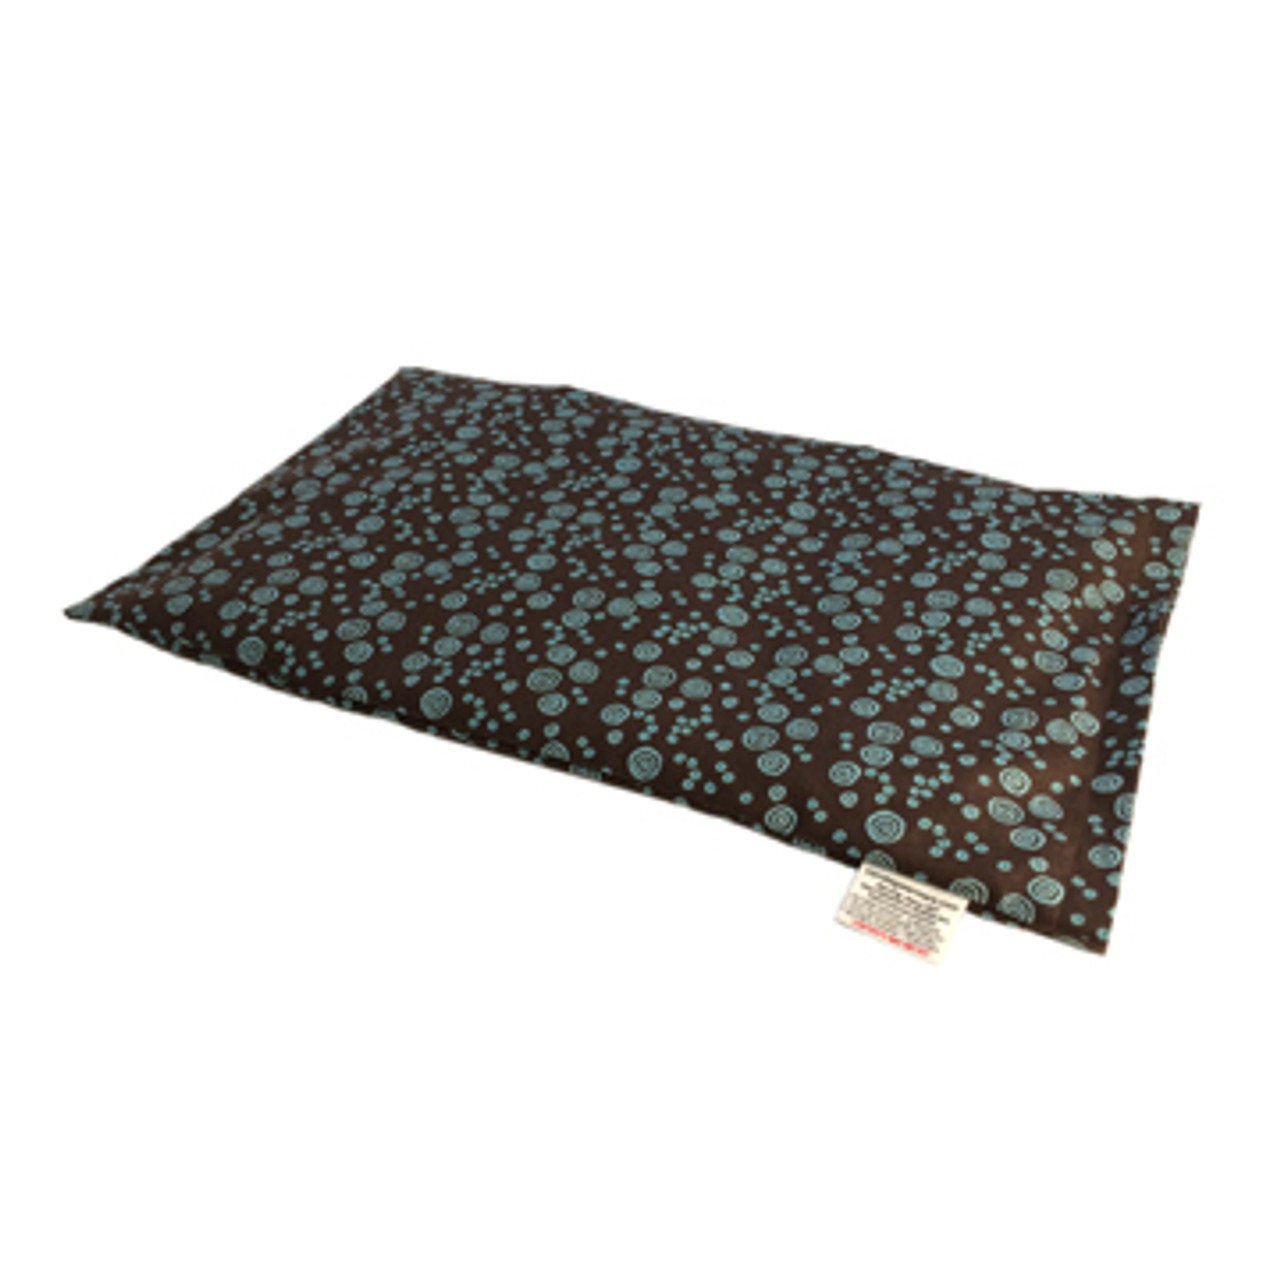 Lap Warmer Microwaveable Corn Heating Pad - Turquoise Fun